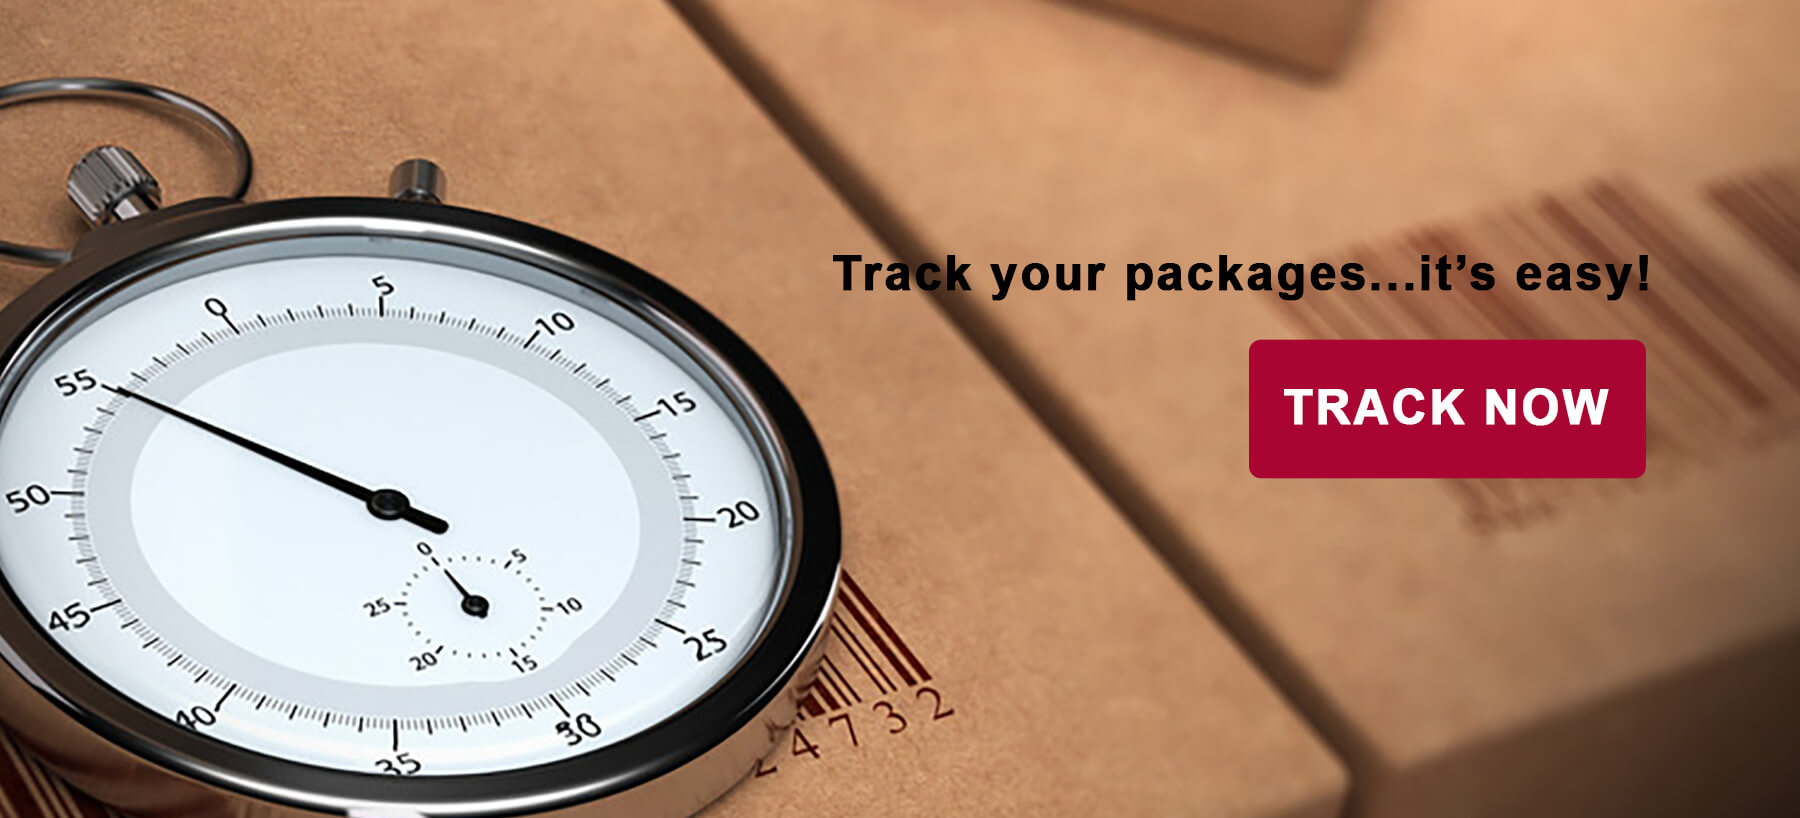 Track you package